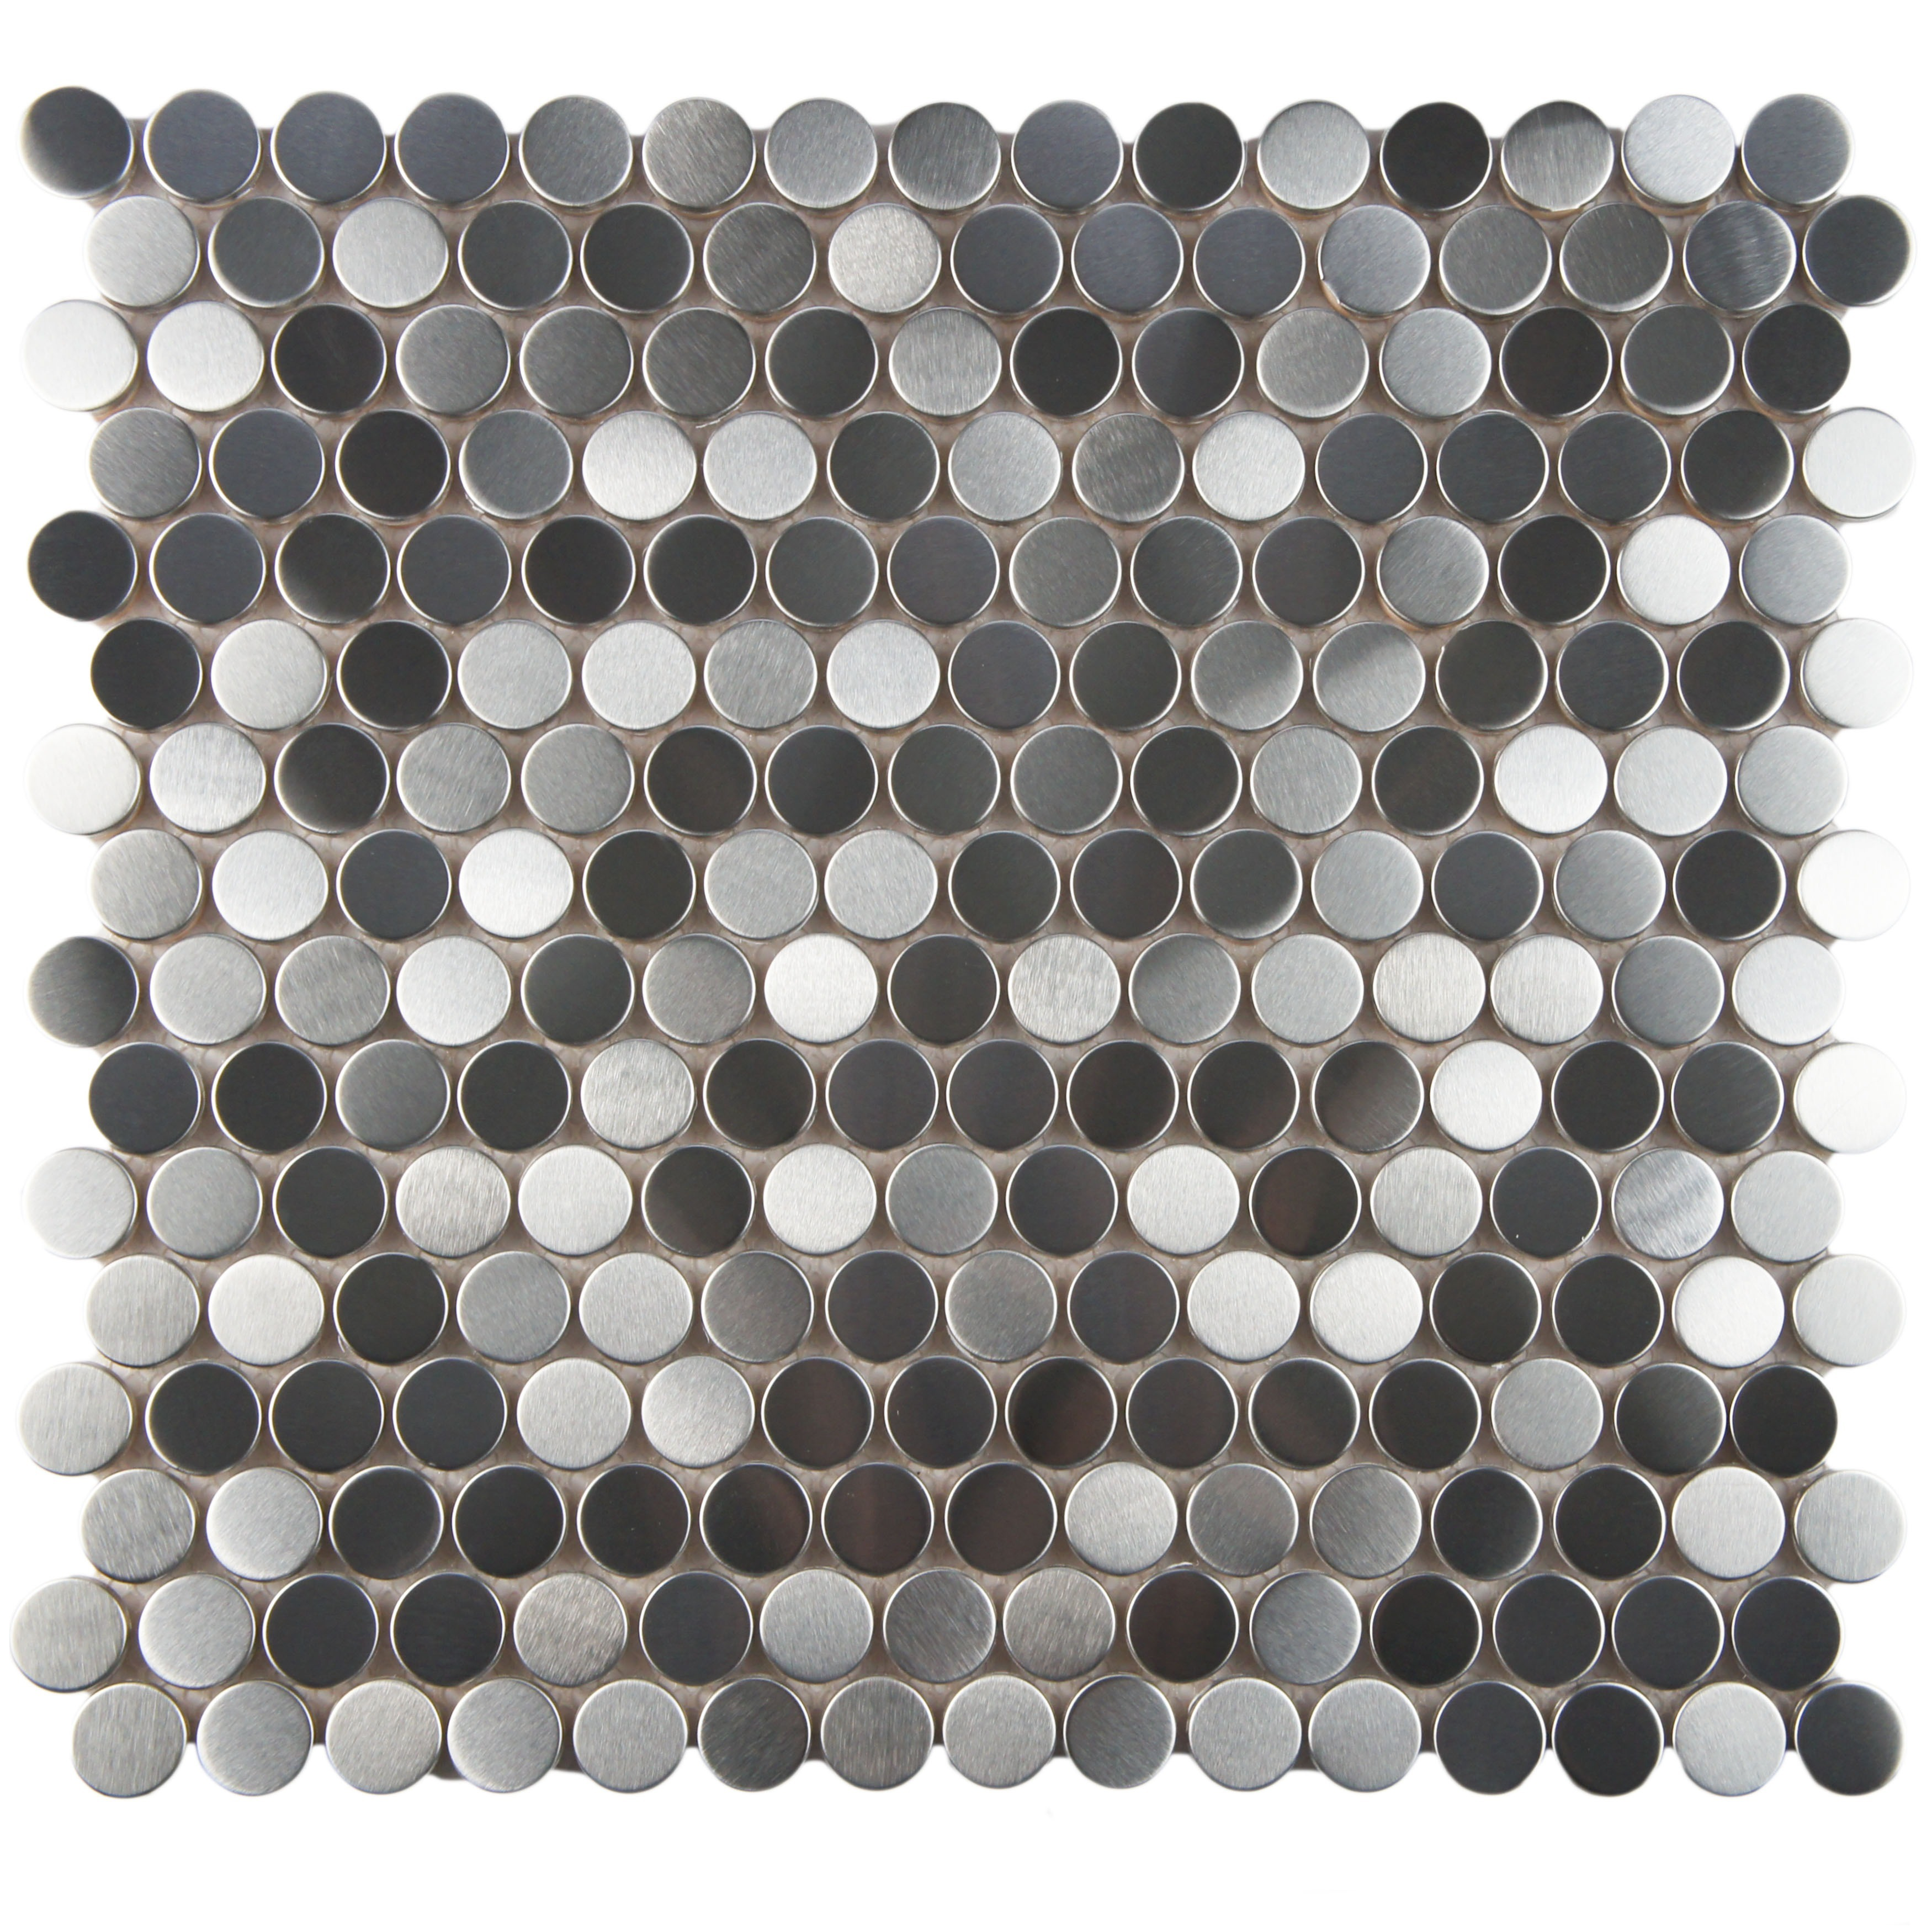 Somertile 11 875x11 875 Inch Chromium Penny Stainless Steel Over Porcelain Mosaic Wall Tile 10 Tiles 9 8 Sqft Free Shipping Today